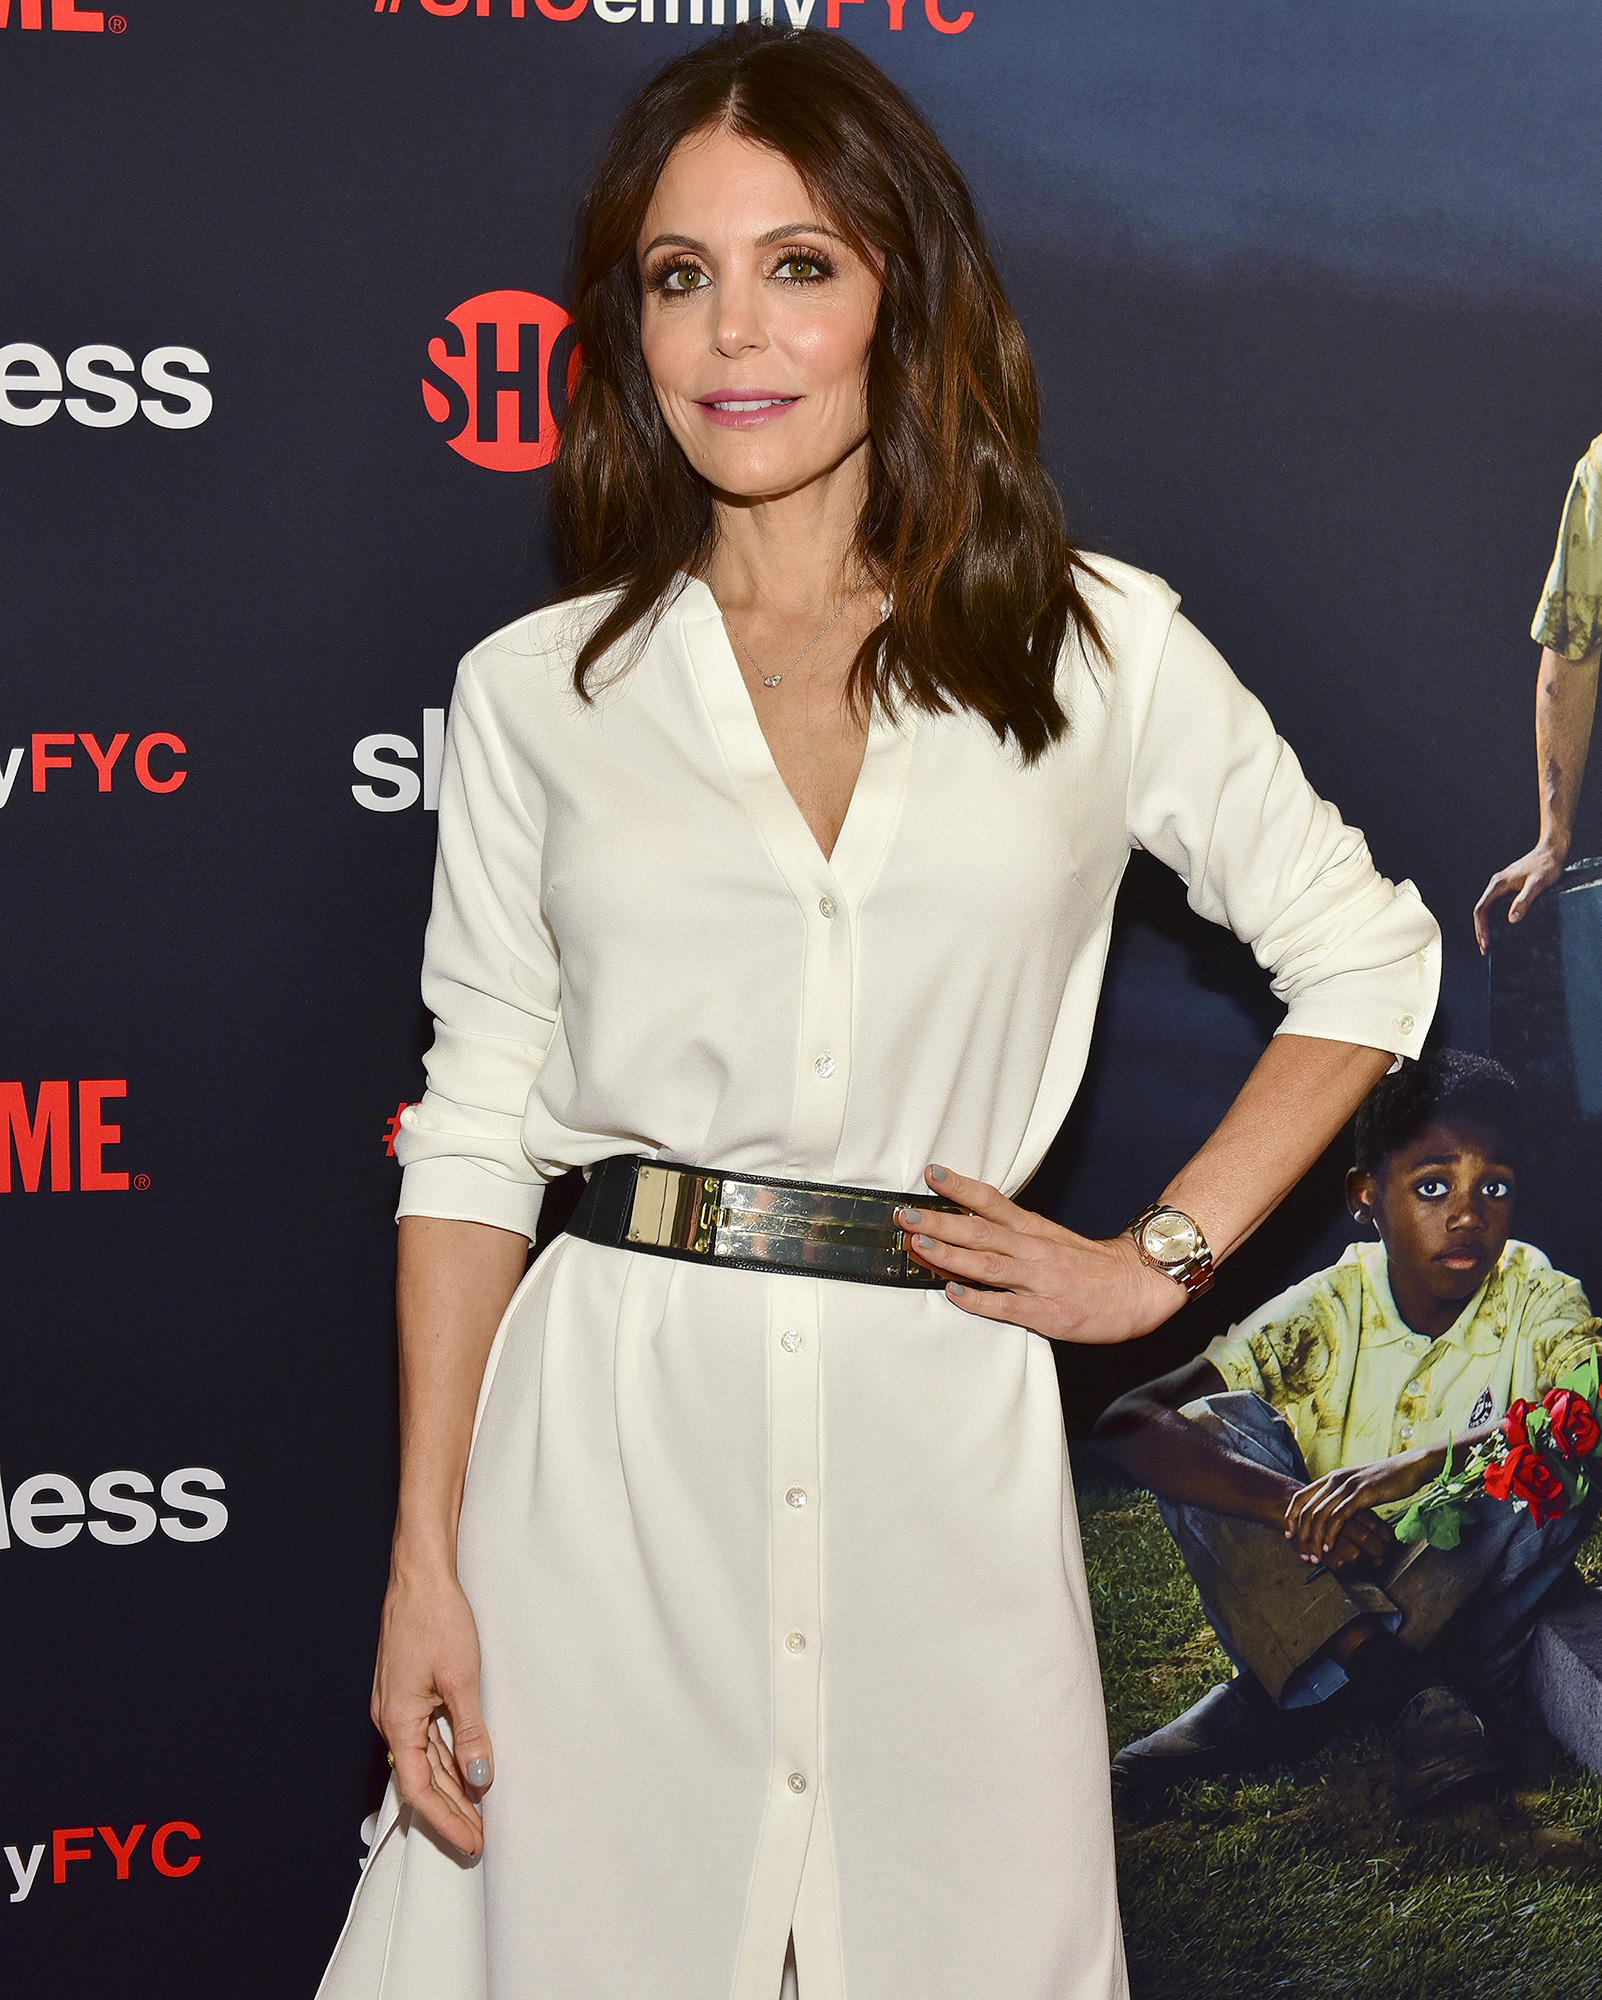 Bethenny Frankel, Grief Diet, Dennis Shields - Bethenny Frankel arrives at the Emmy For Your Consideration Event for Showtime's 'Shameless' at Linwood Dunn Theater on May 24, 2018 in Los Angeles, California.